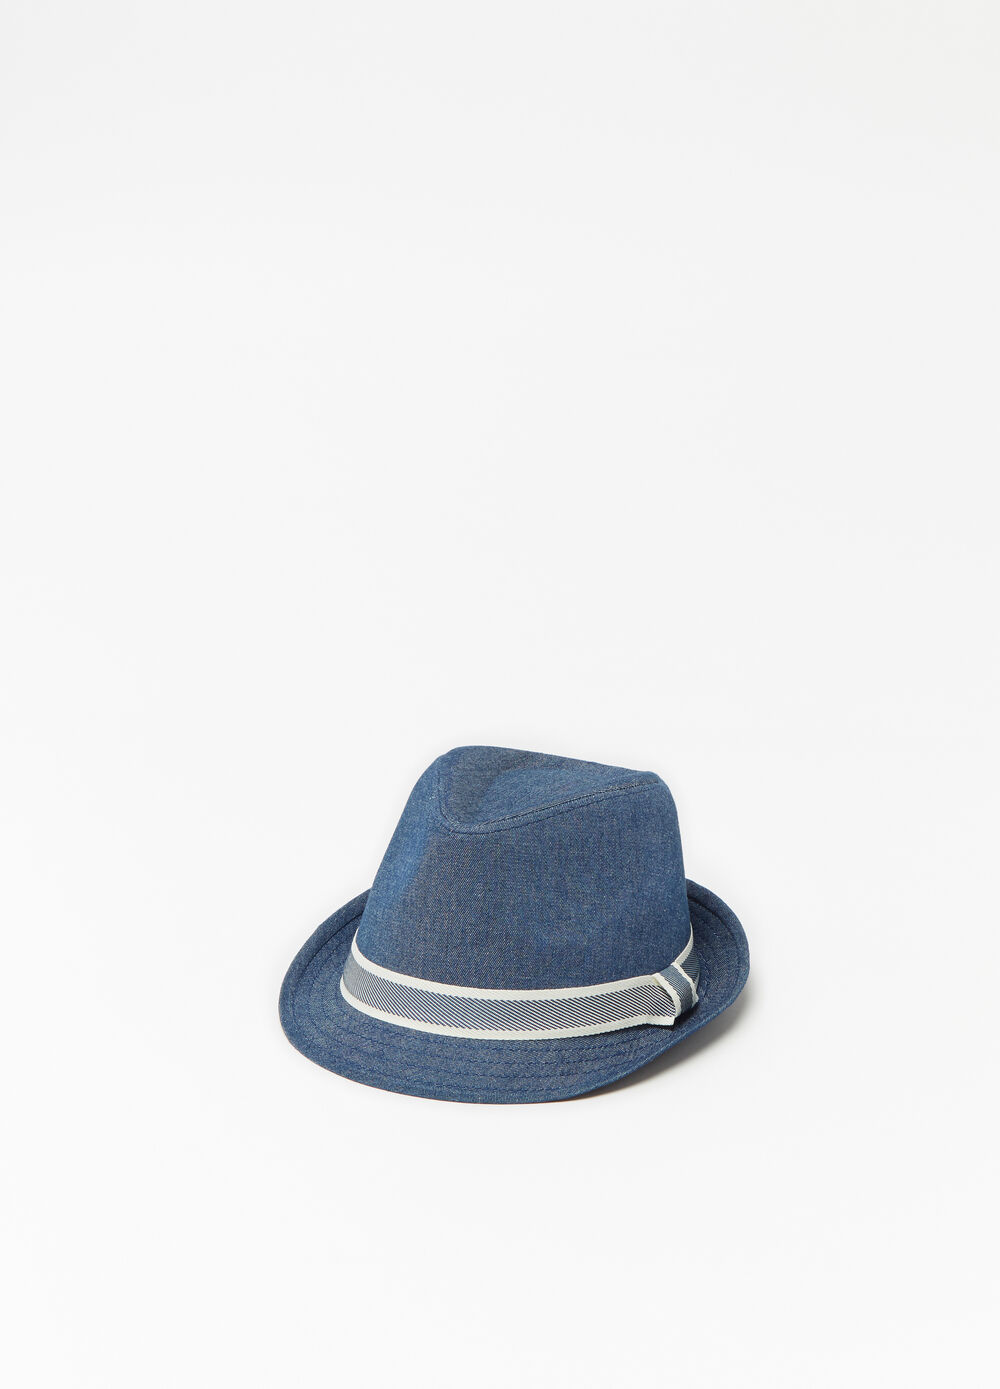 Denim hat with band